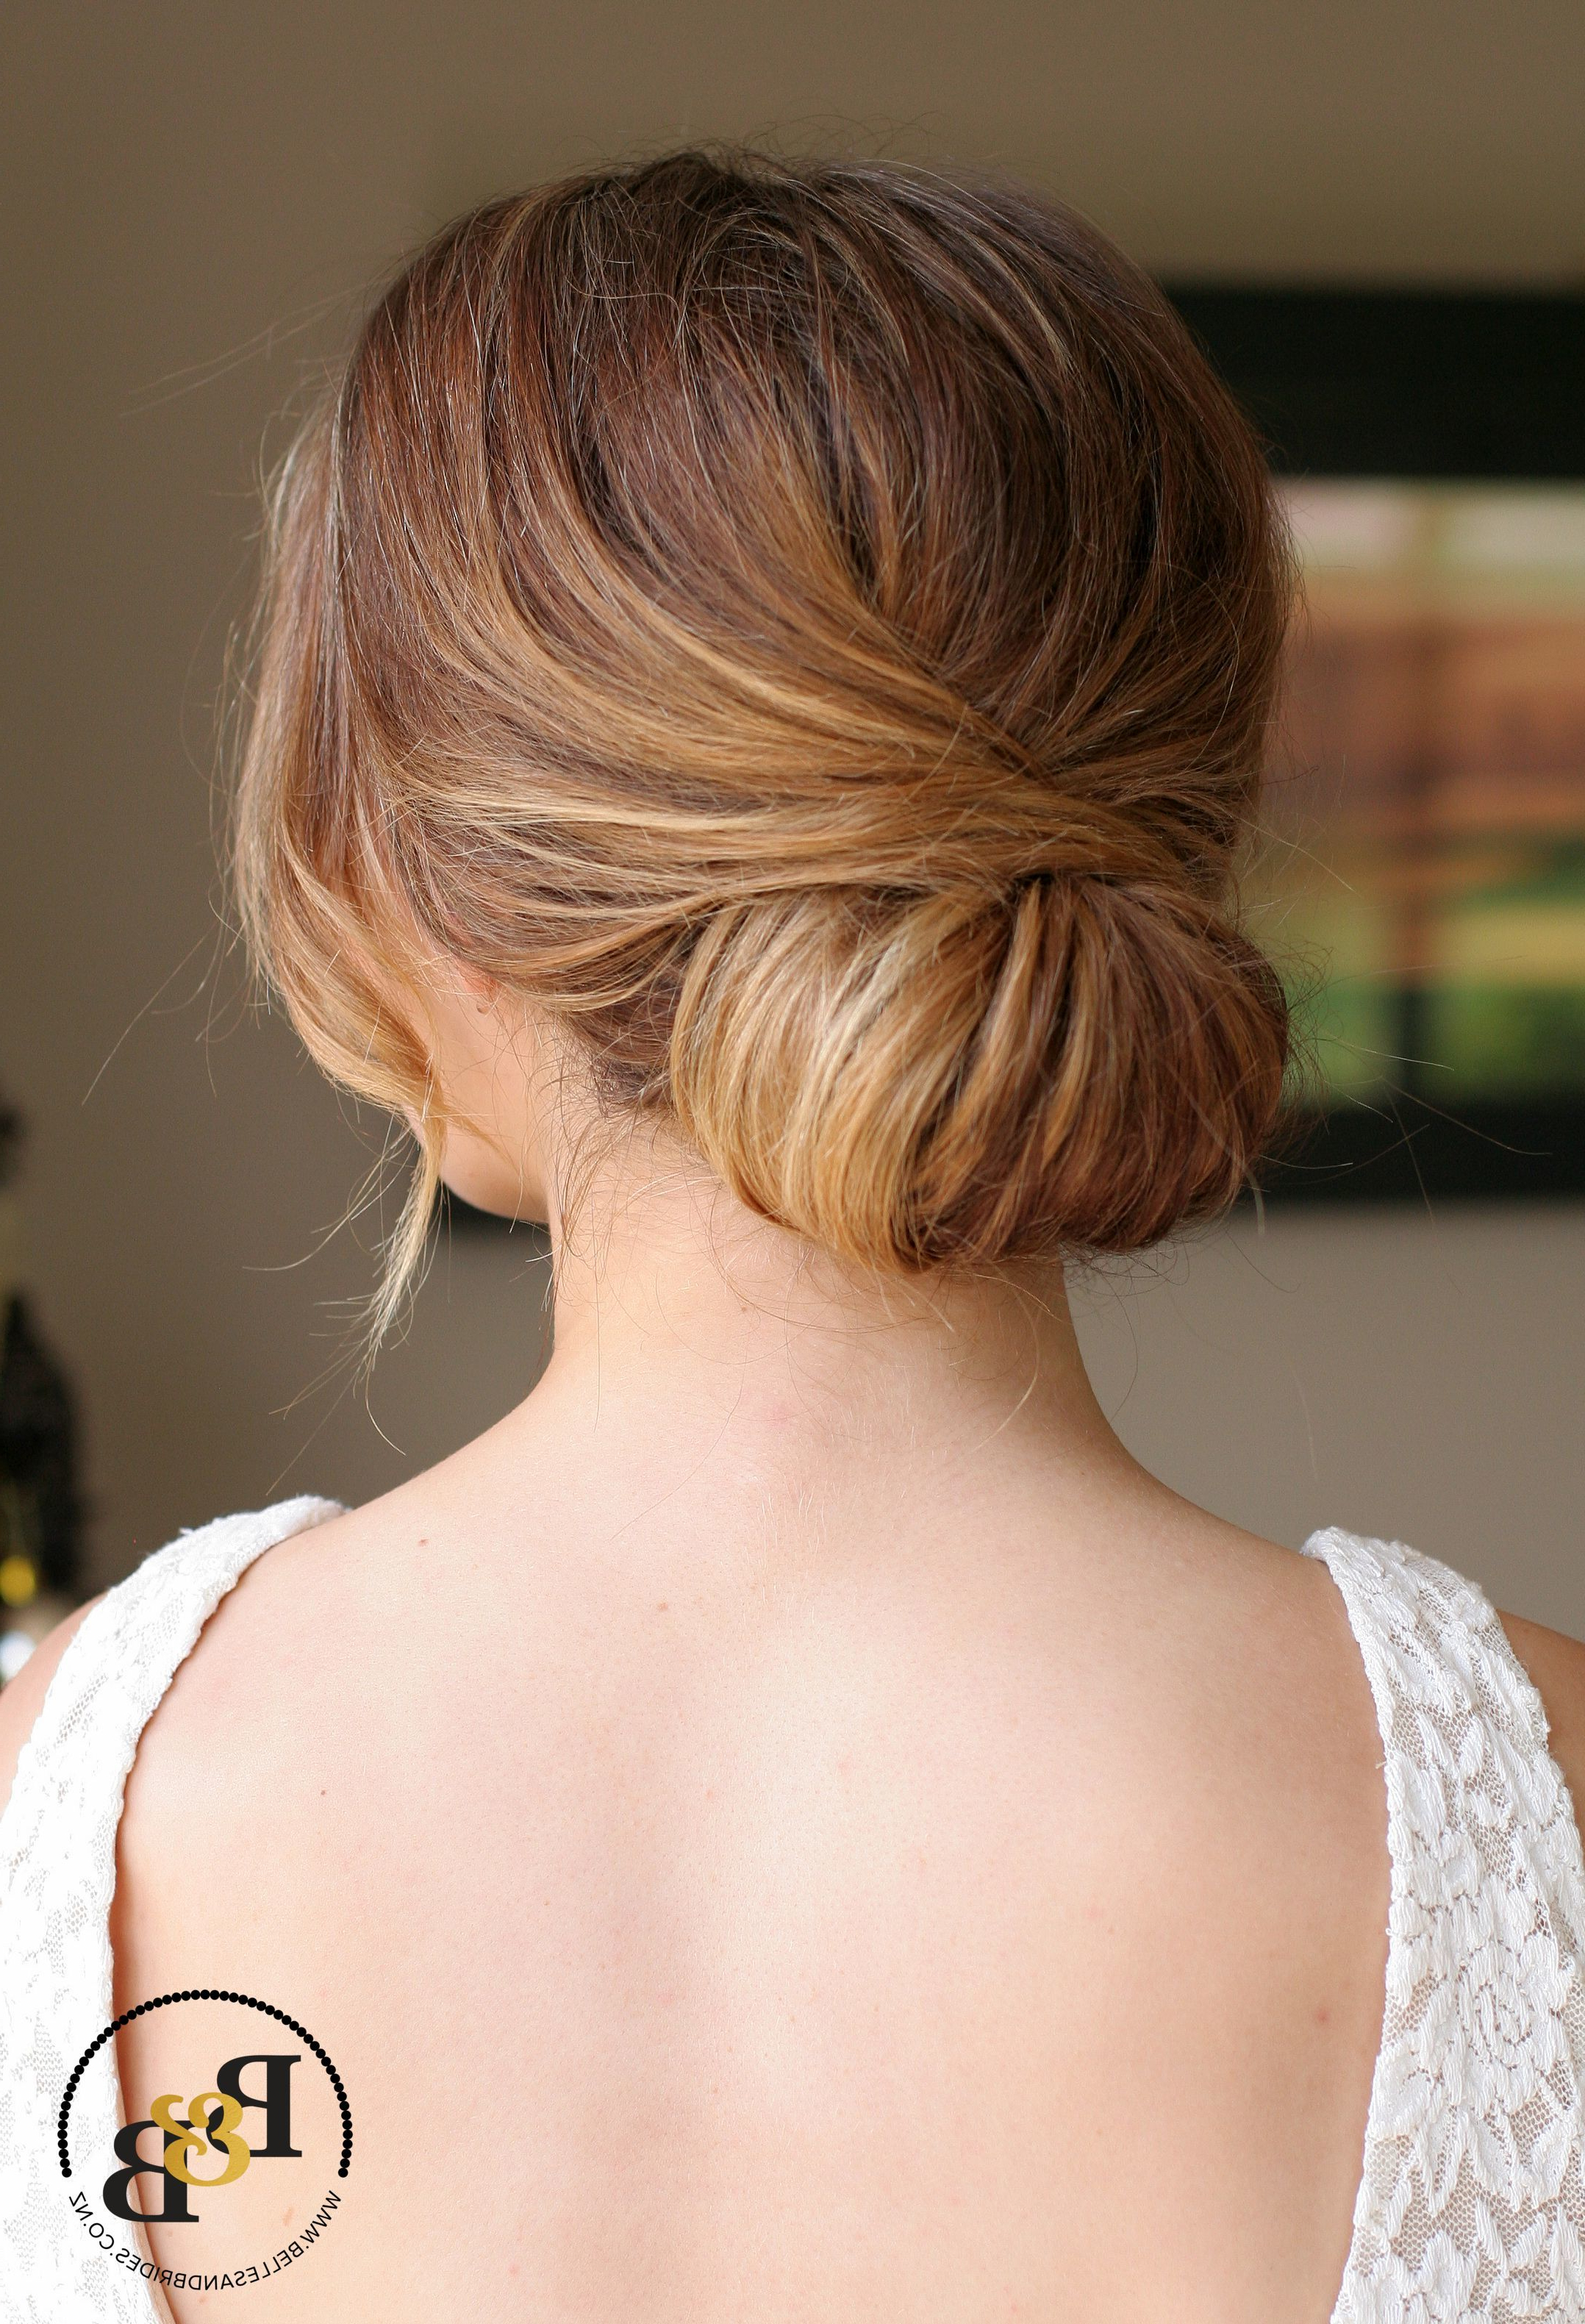 Wedding Hair Low Chignon / Casual Bridal Chignon / Soft Romantic Throughout 2018 Undone Low Bun Bridal Hairstyles With Floral Headband (Gallery 14 of 20)